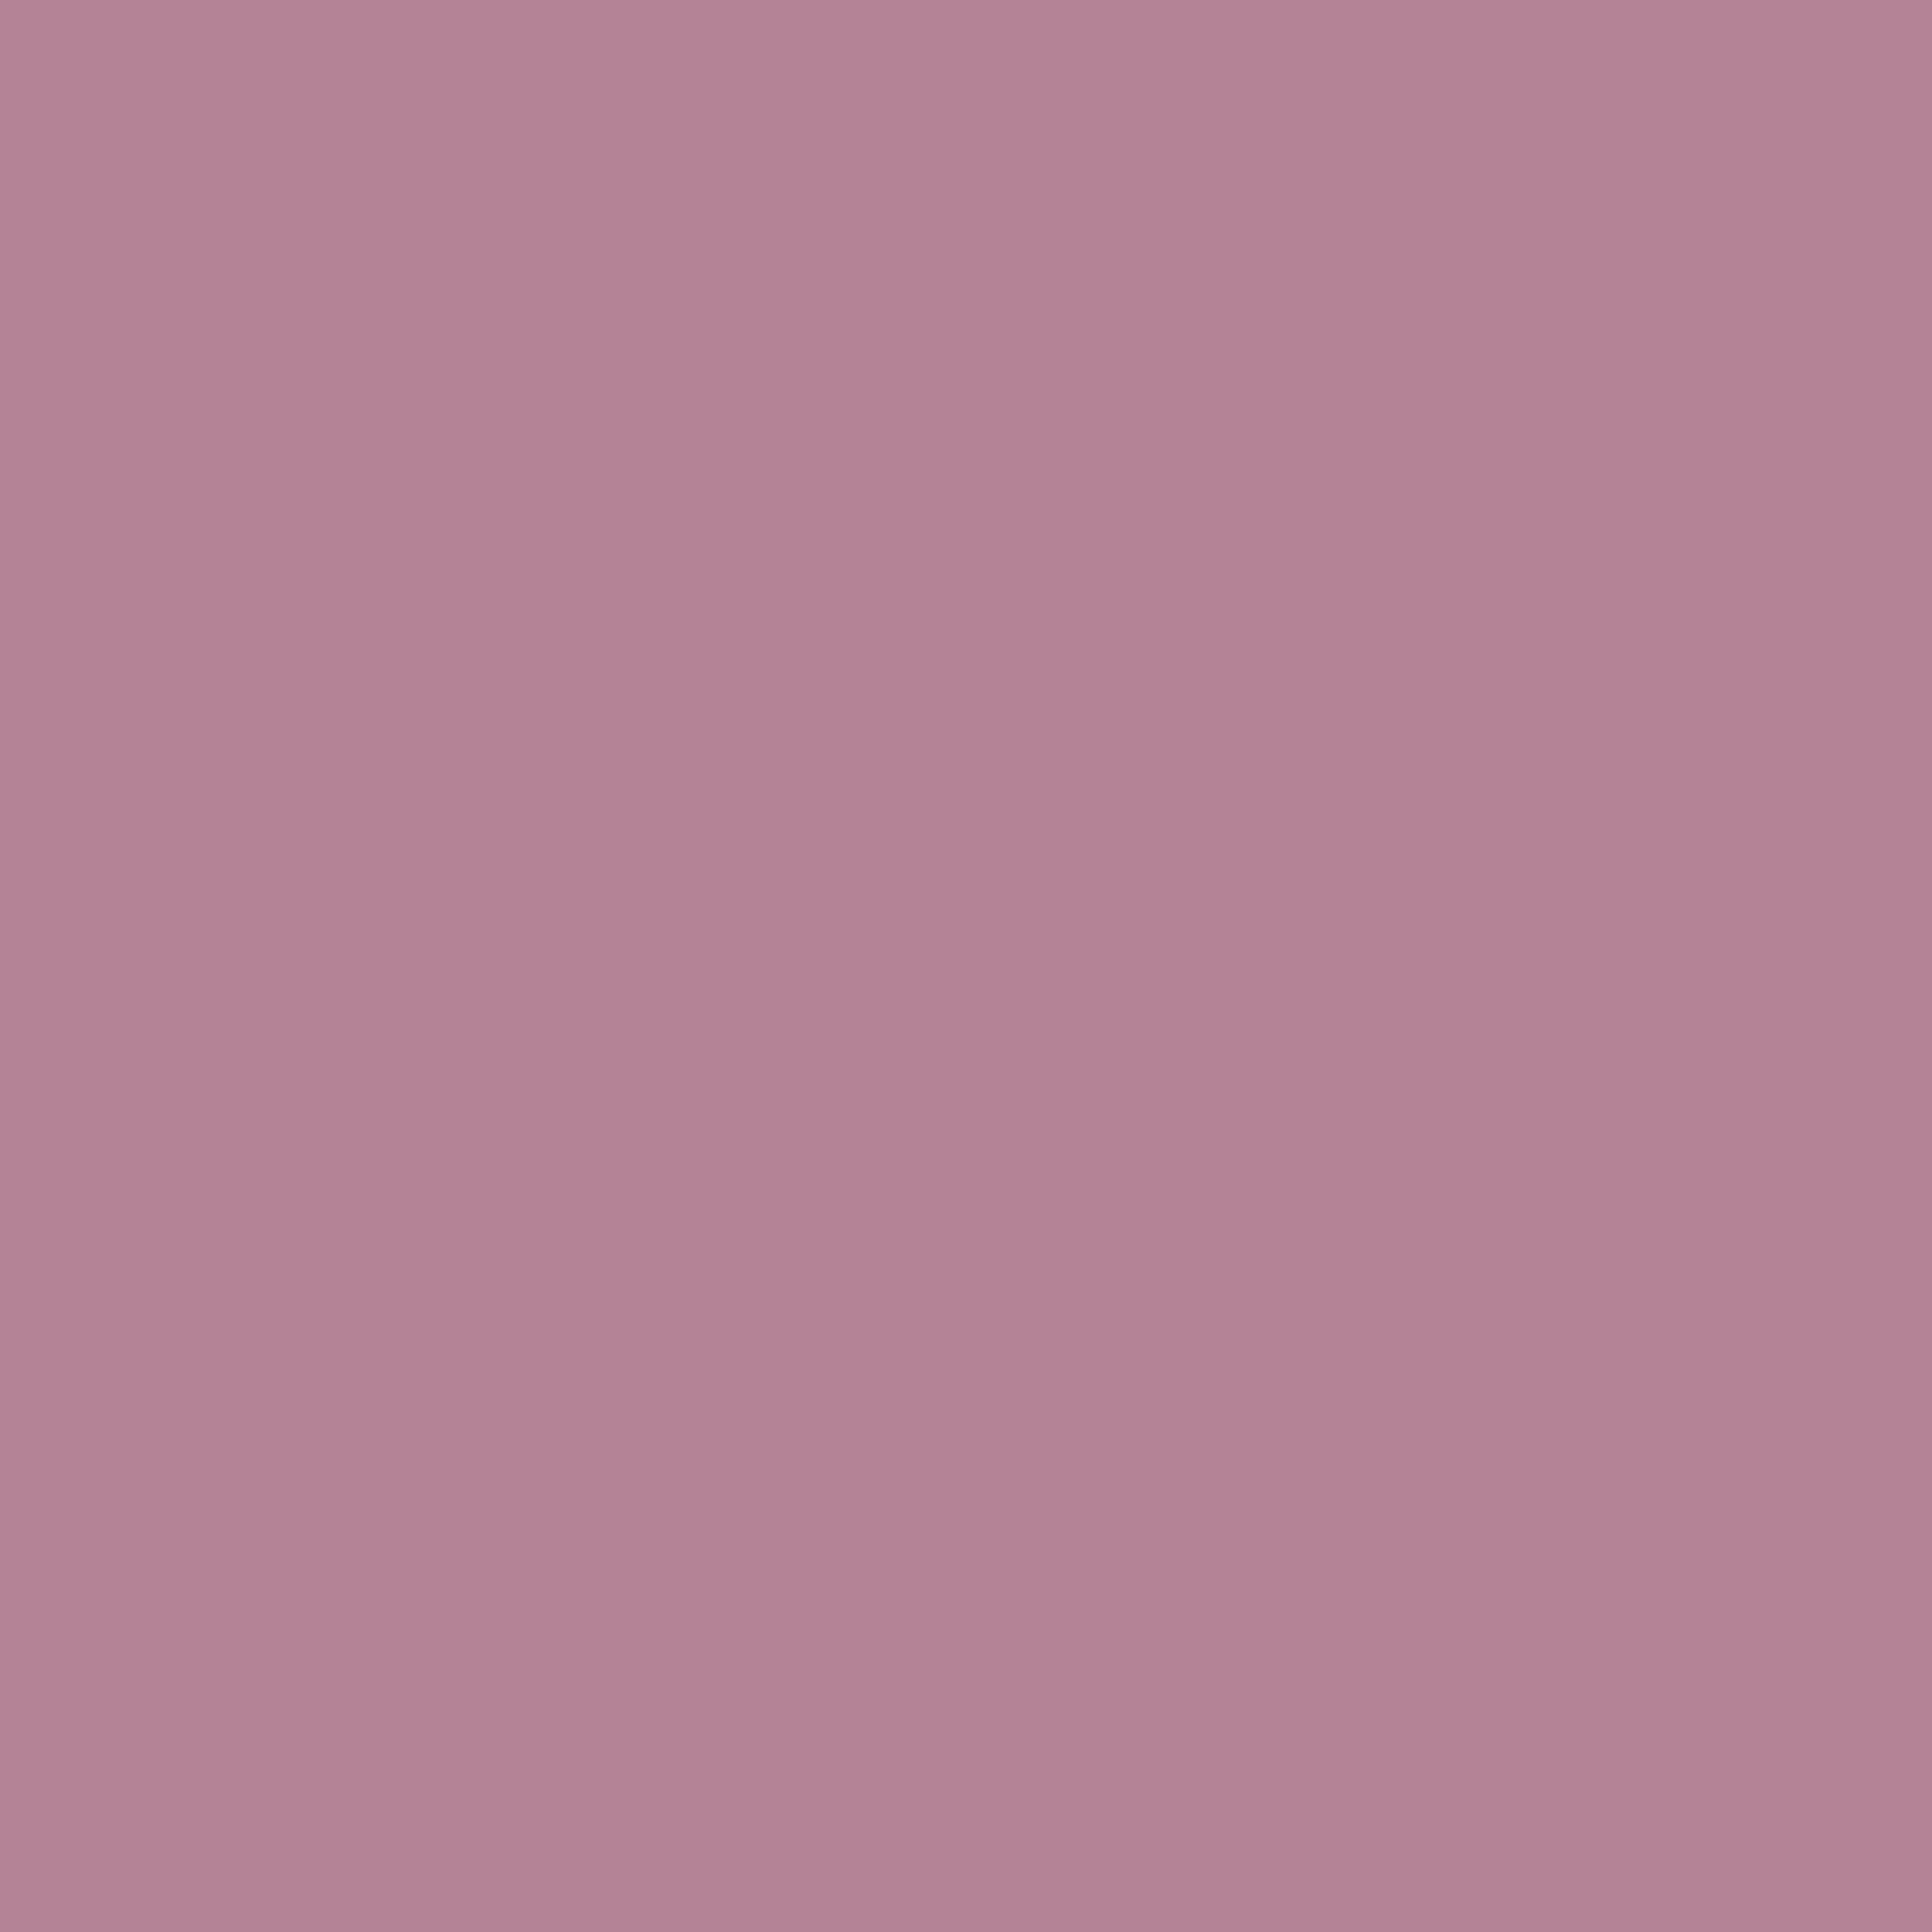 2732x2732 English Lavender Solid Color Background